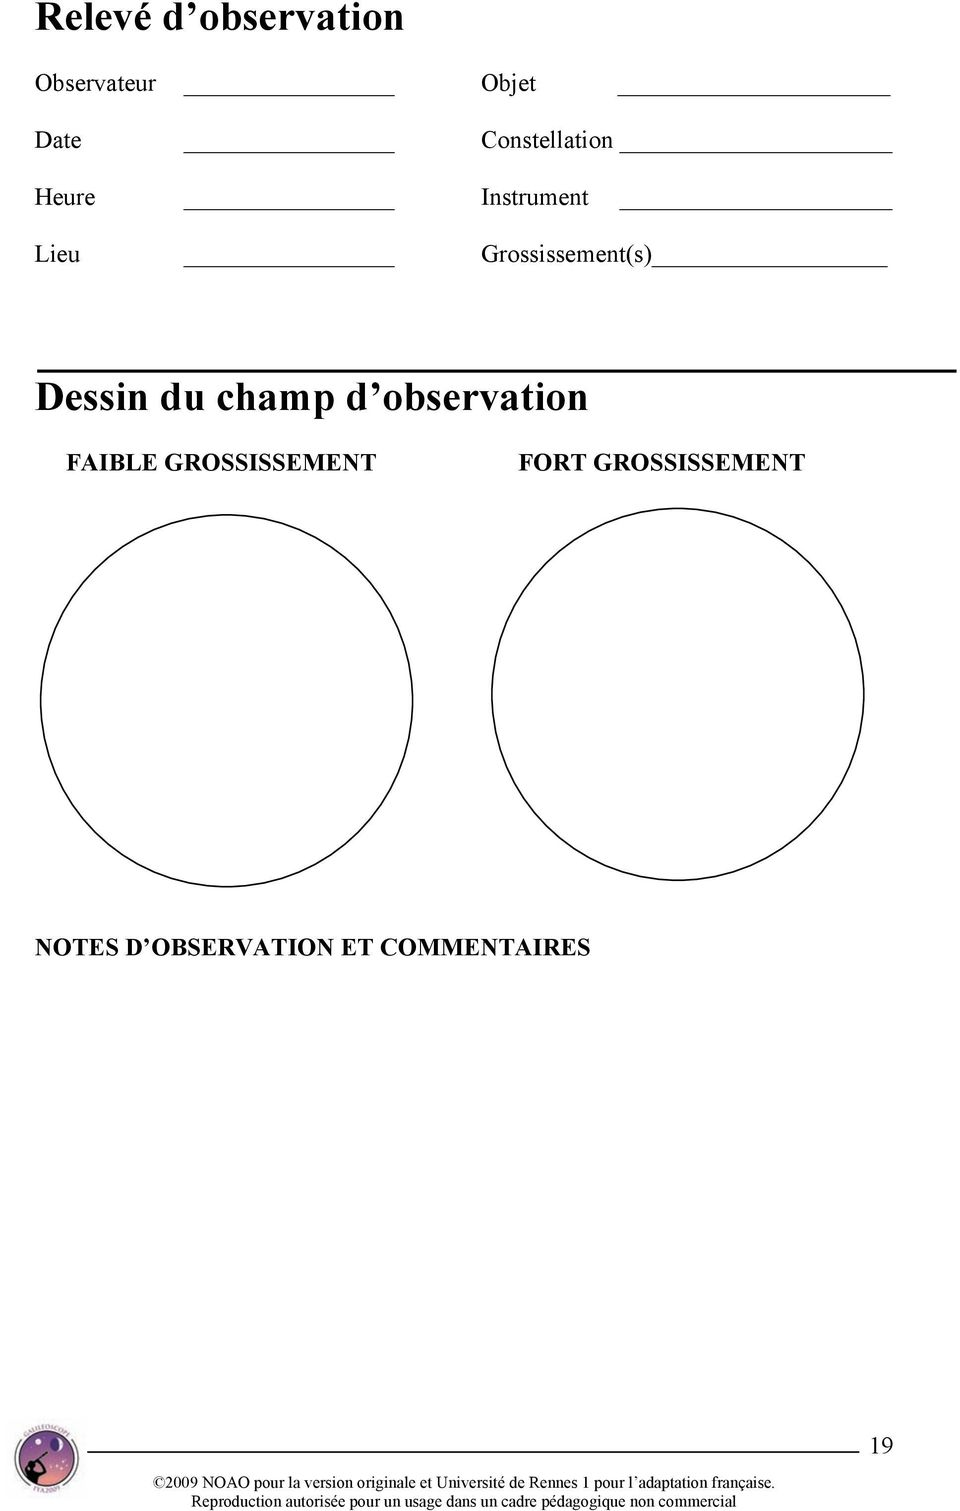 Grossissement(s) Dessin du champ d observation